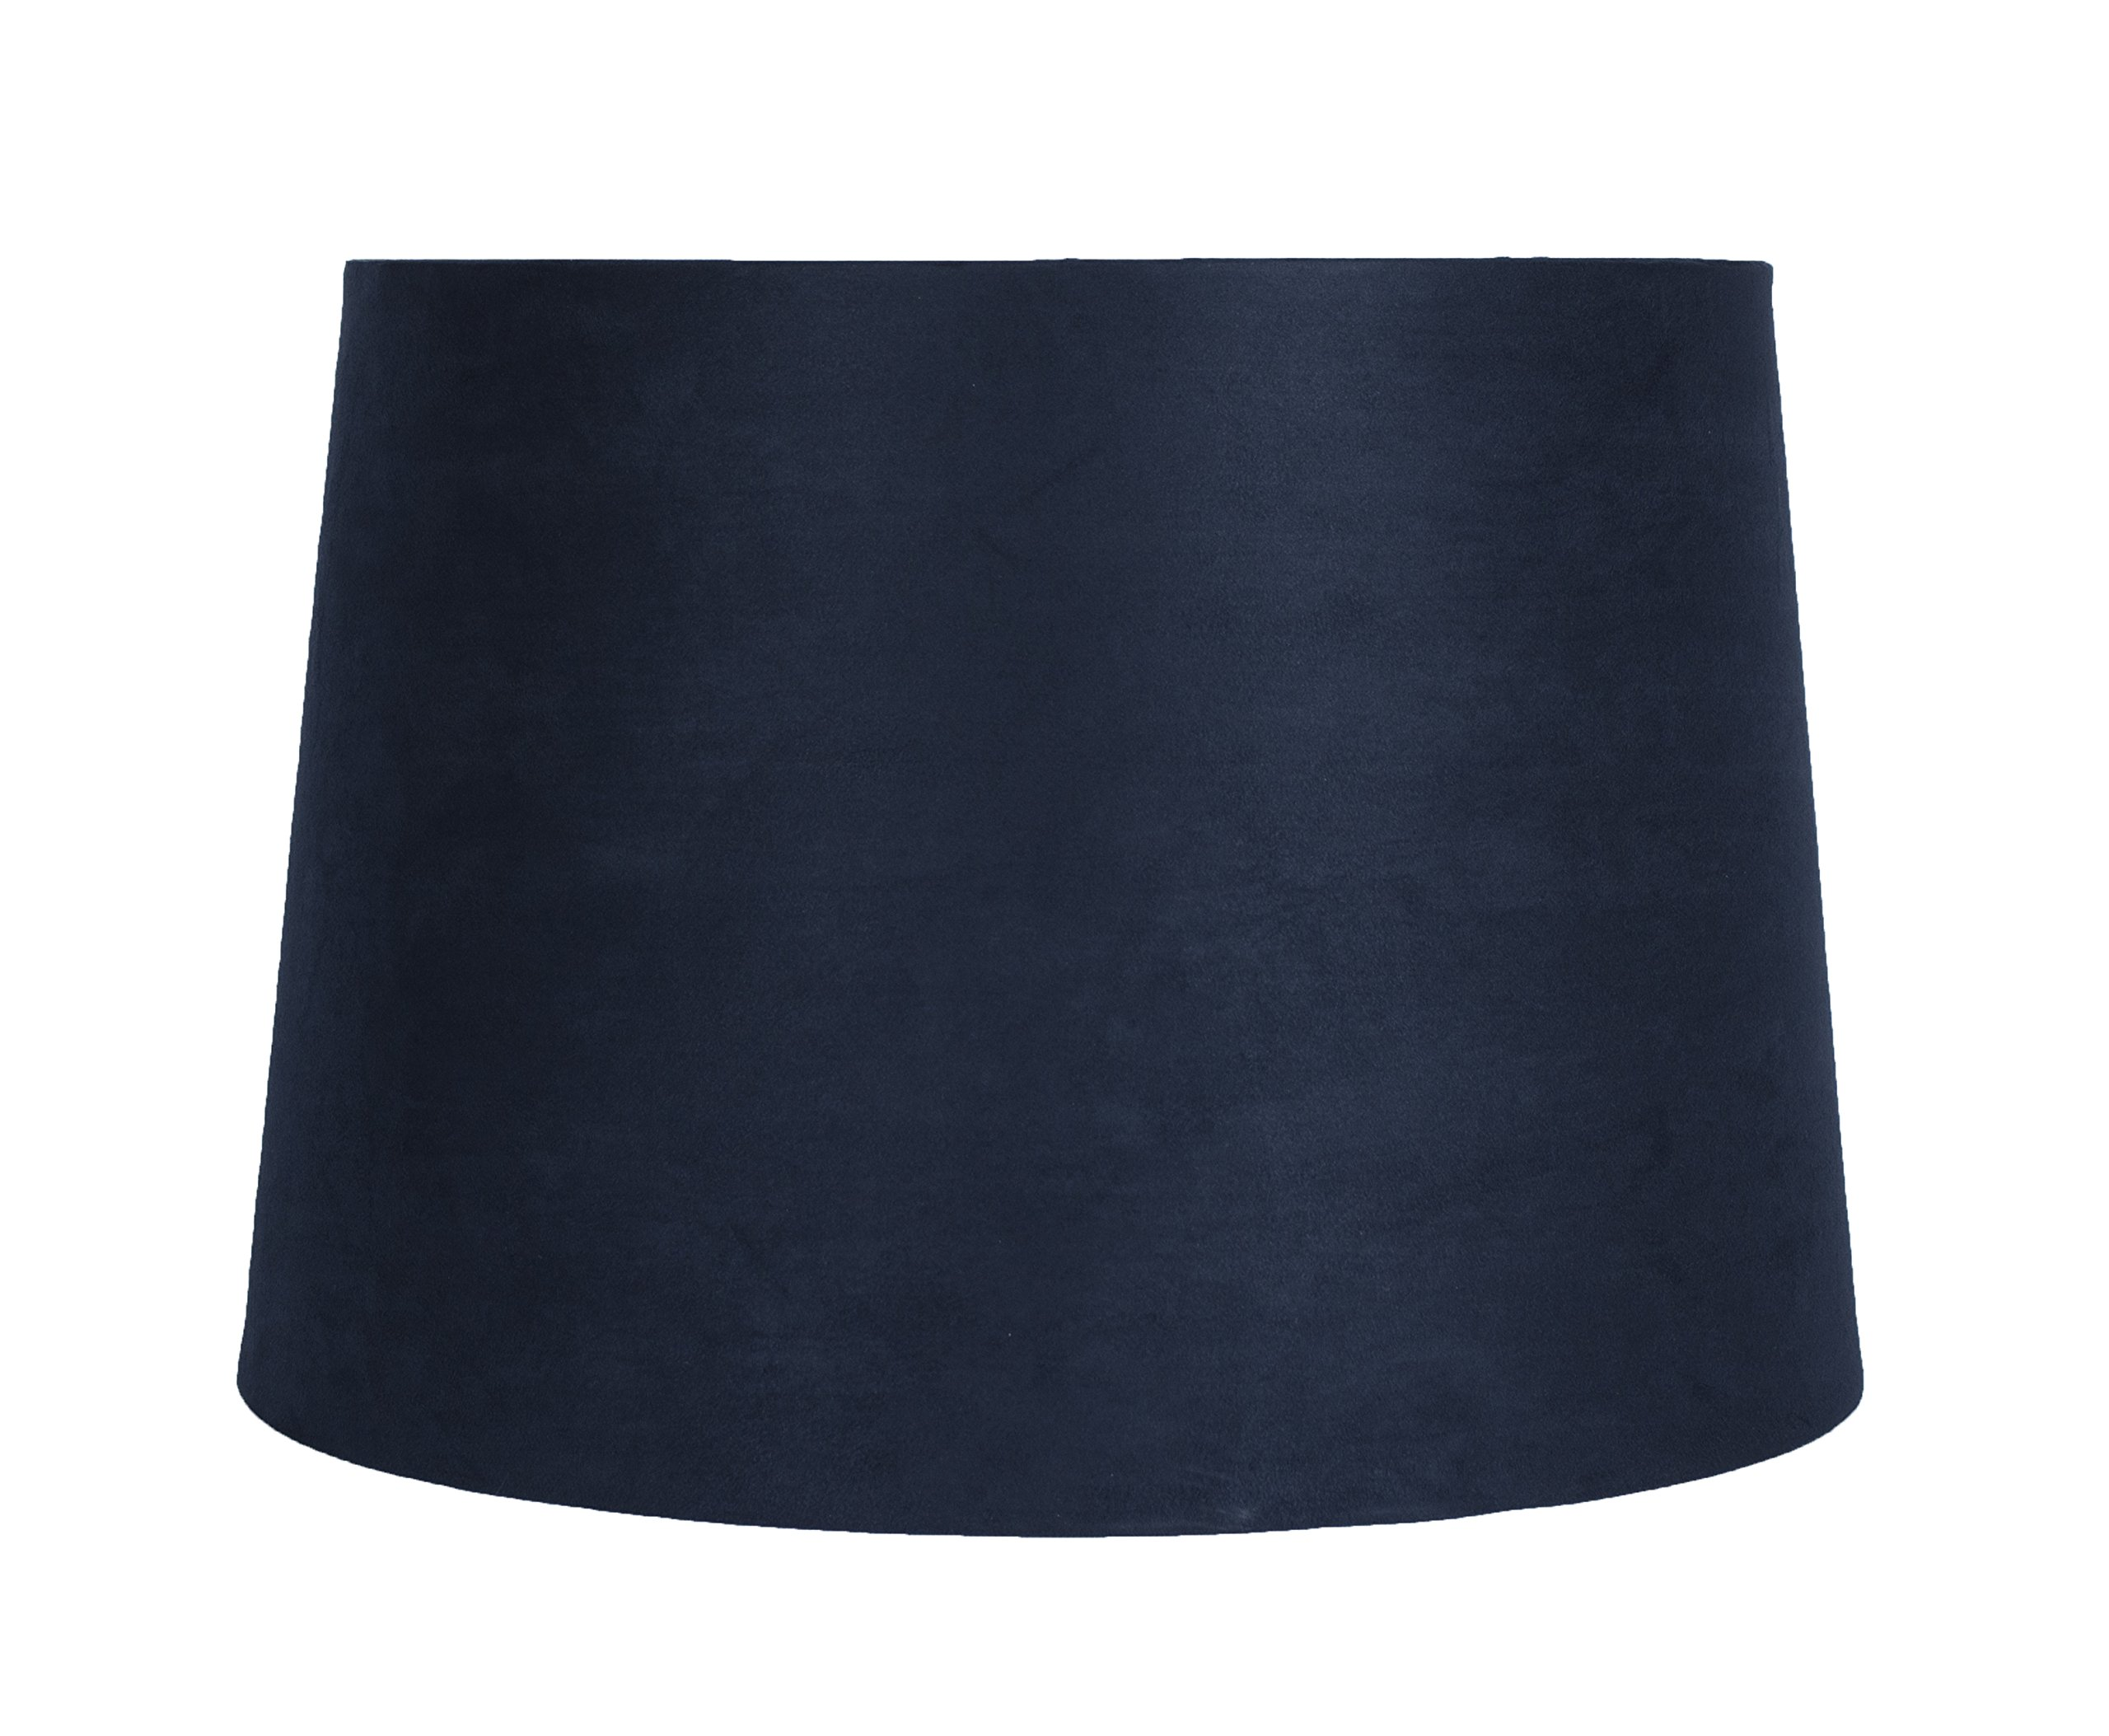 Urbanest French Drum Suede Lampshade, 12-inch by 14-inch by 10-inch, Spider Fitter, Navy Blue